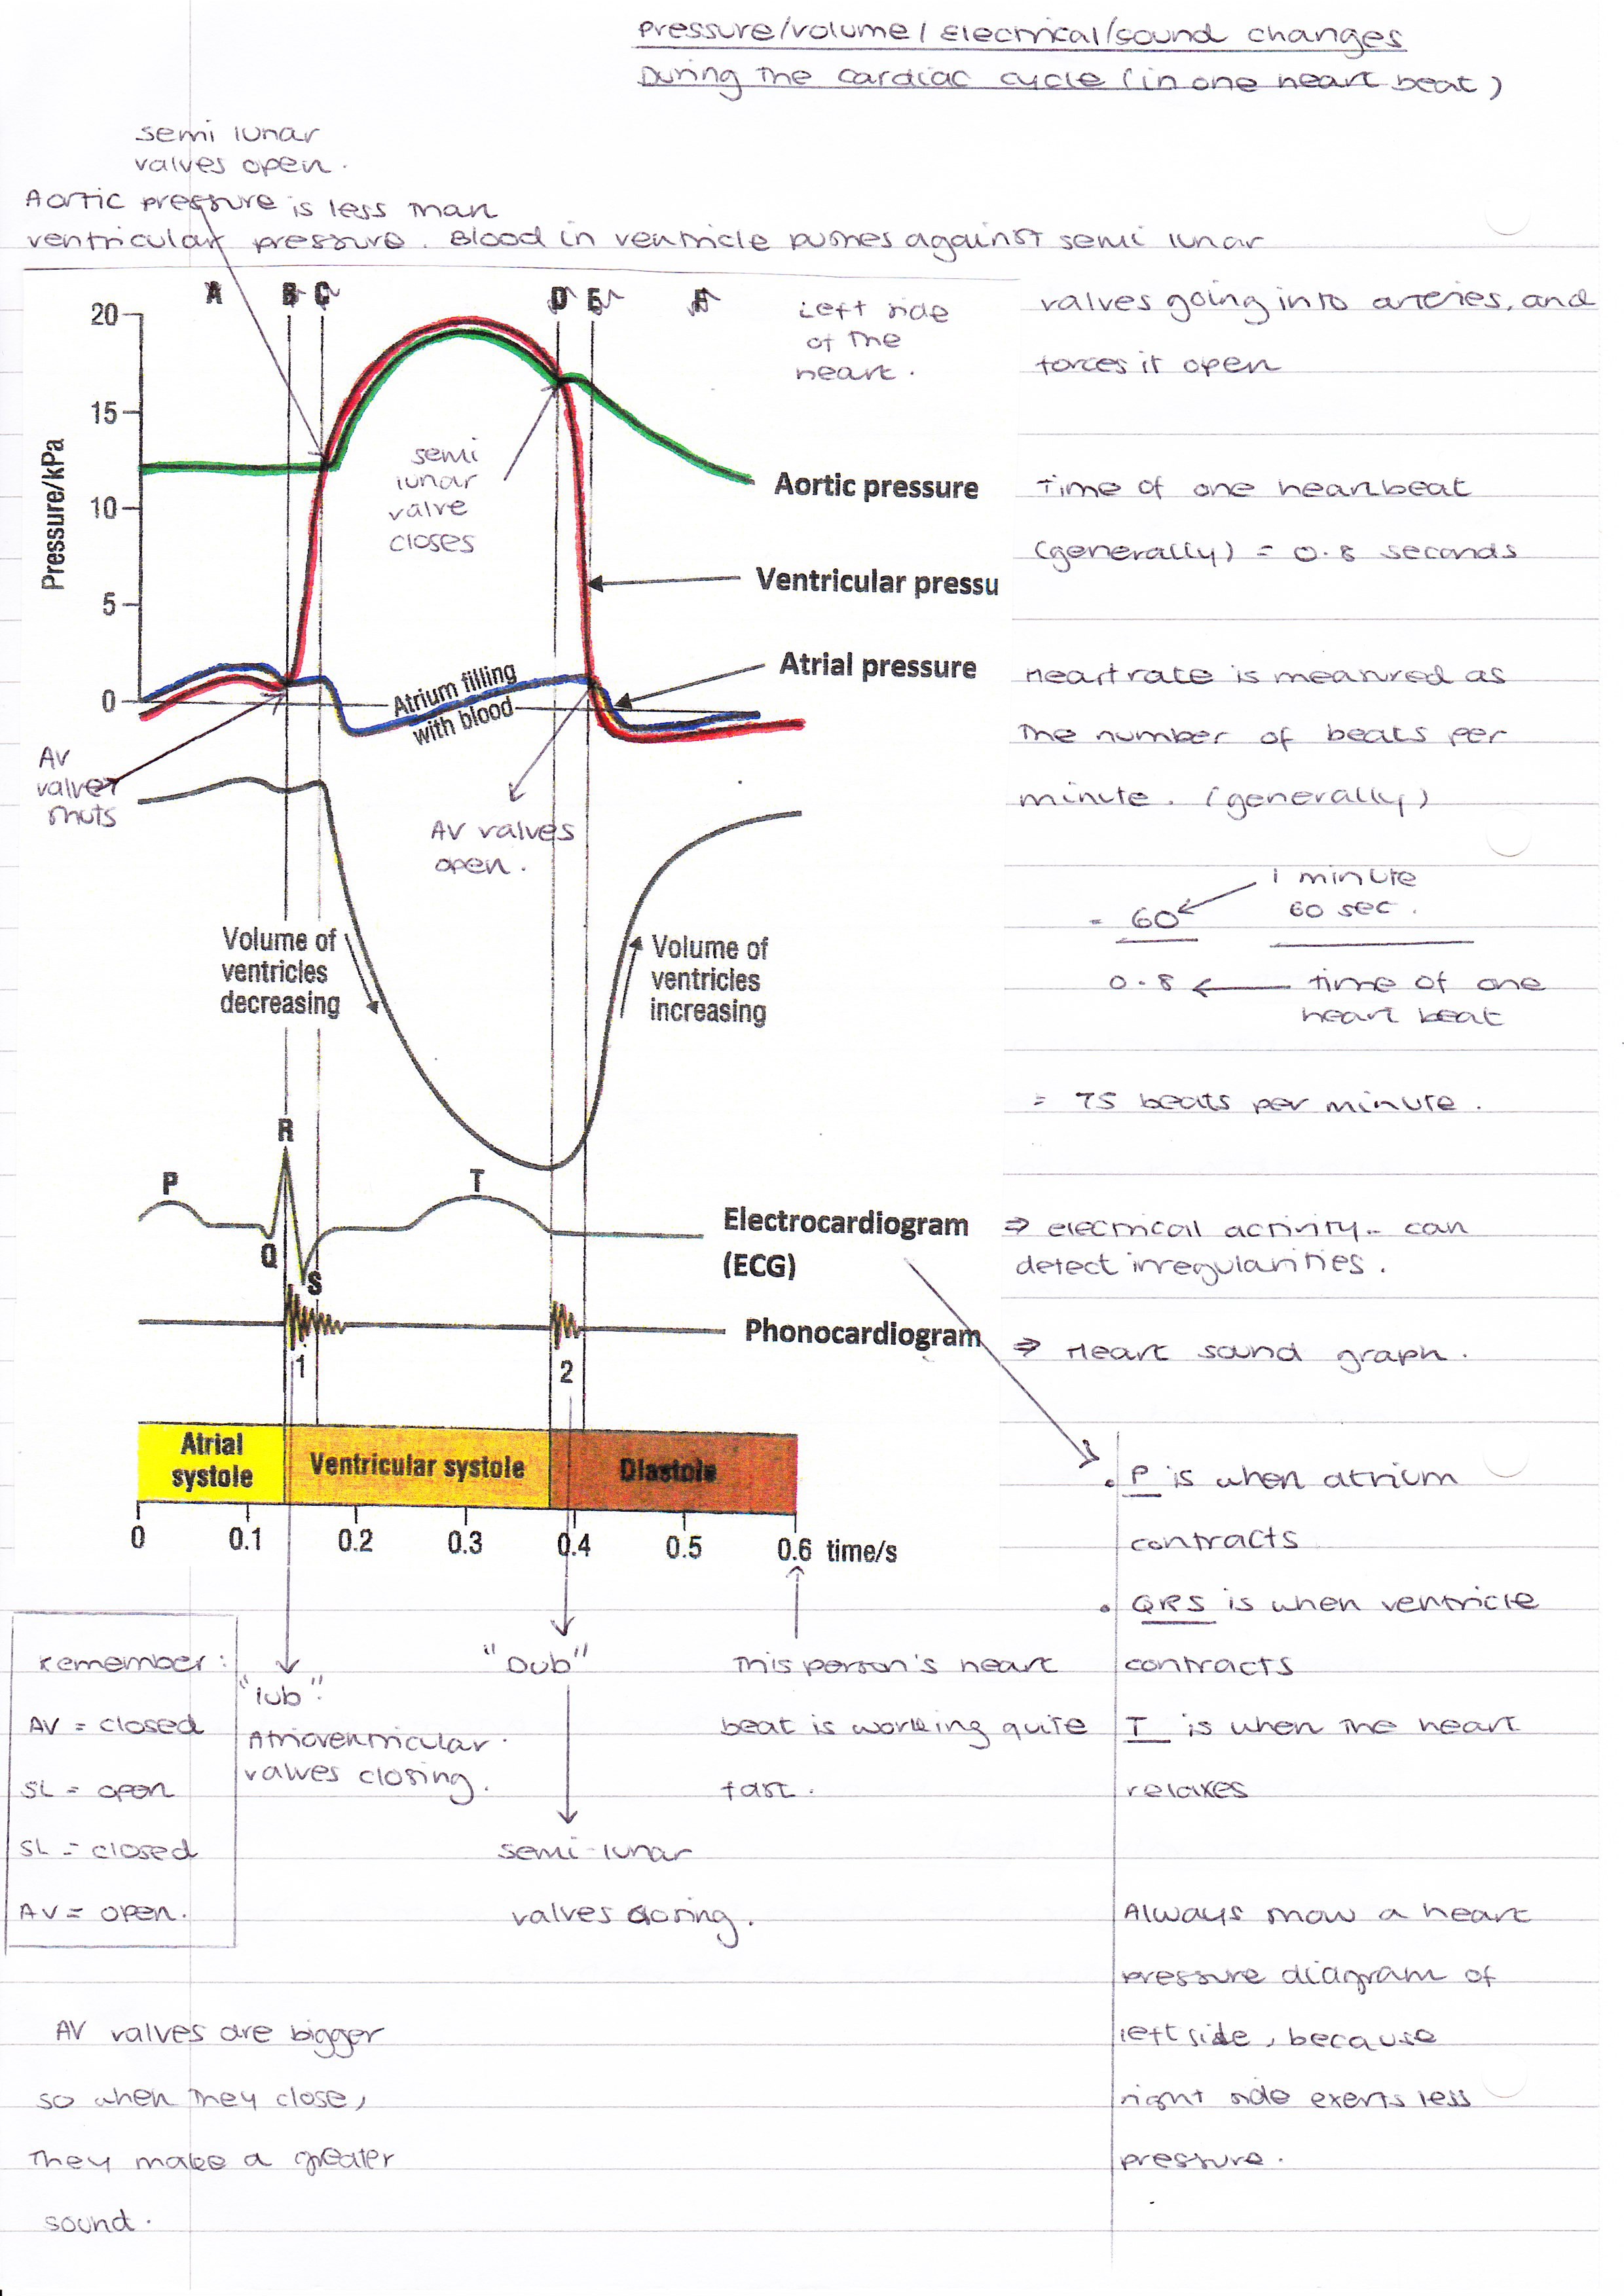 Cardiac cycle cont cressies student medical blog cardiac cycle cont pooptronica